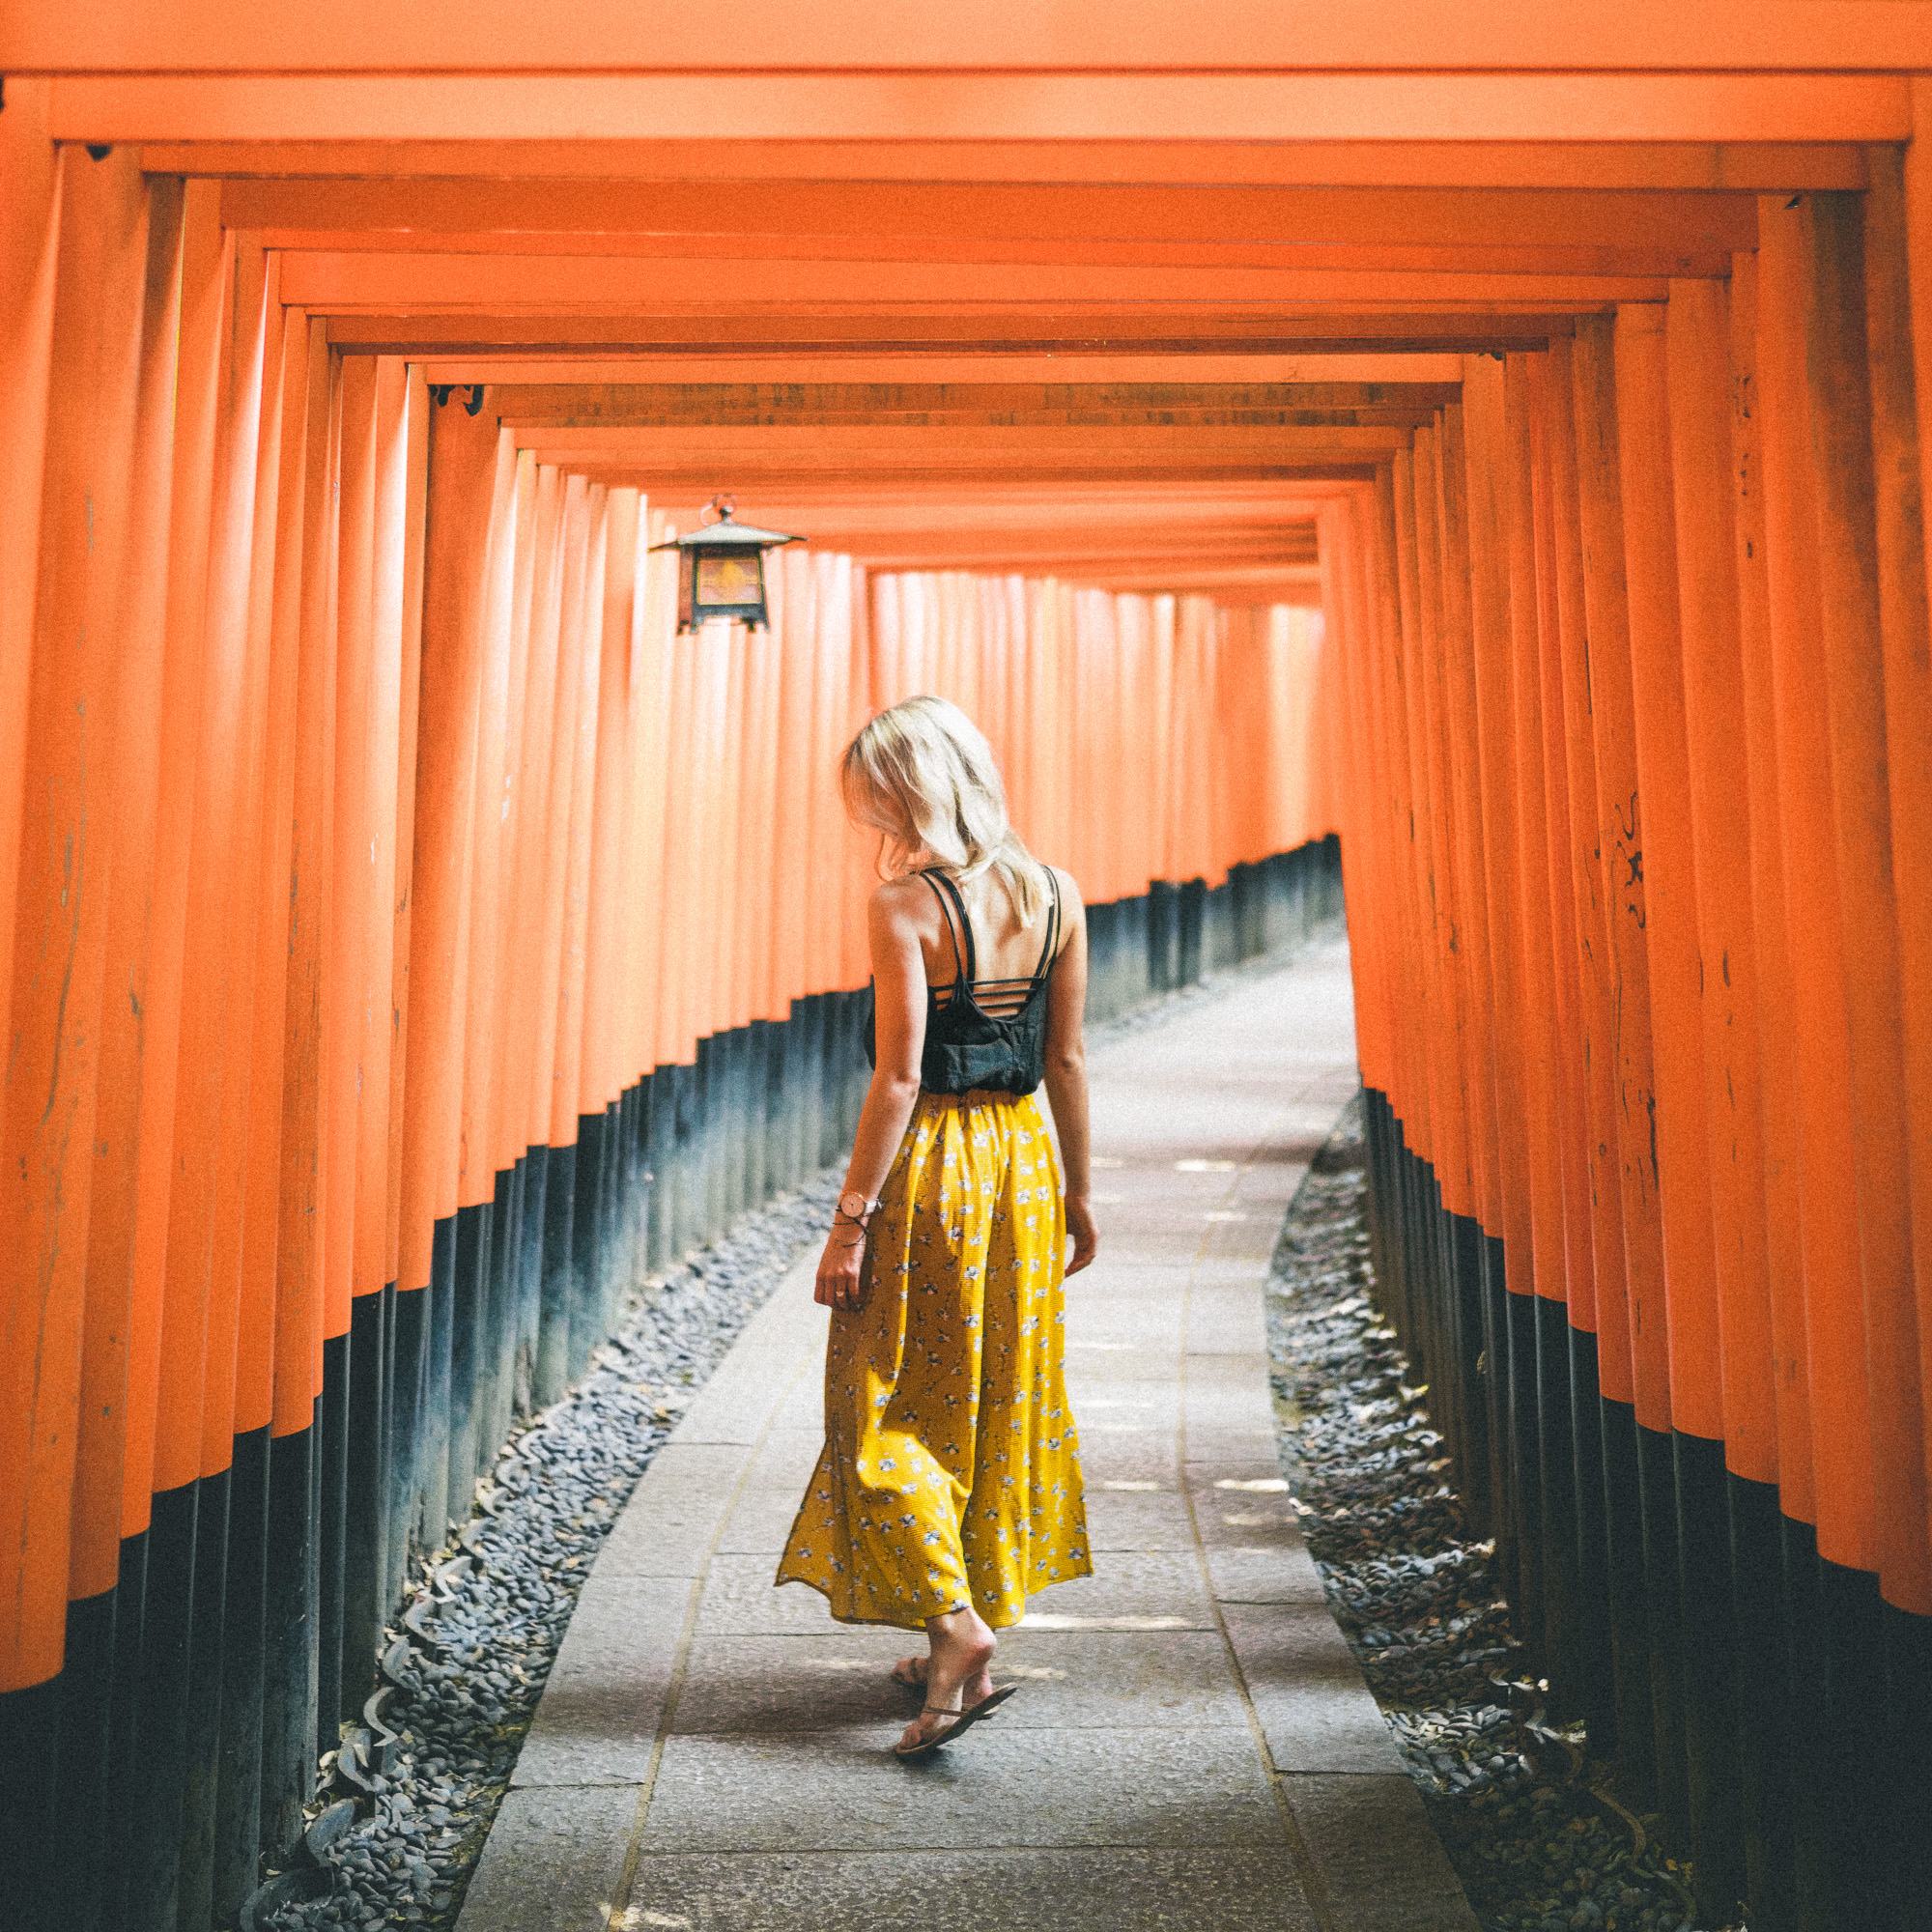 Fushimi-Inari Taisha Shrine in Kyoto, Japan | 24 Hour Guide to Kyoto, Japan | 1 Day Guide Kyoto | Kyoto City Guide | Kyoto Travel Itinerary